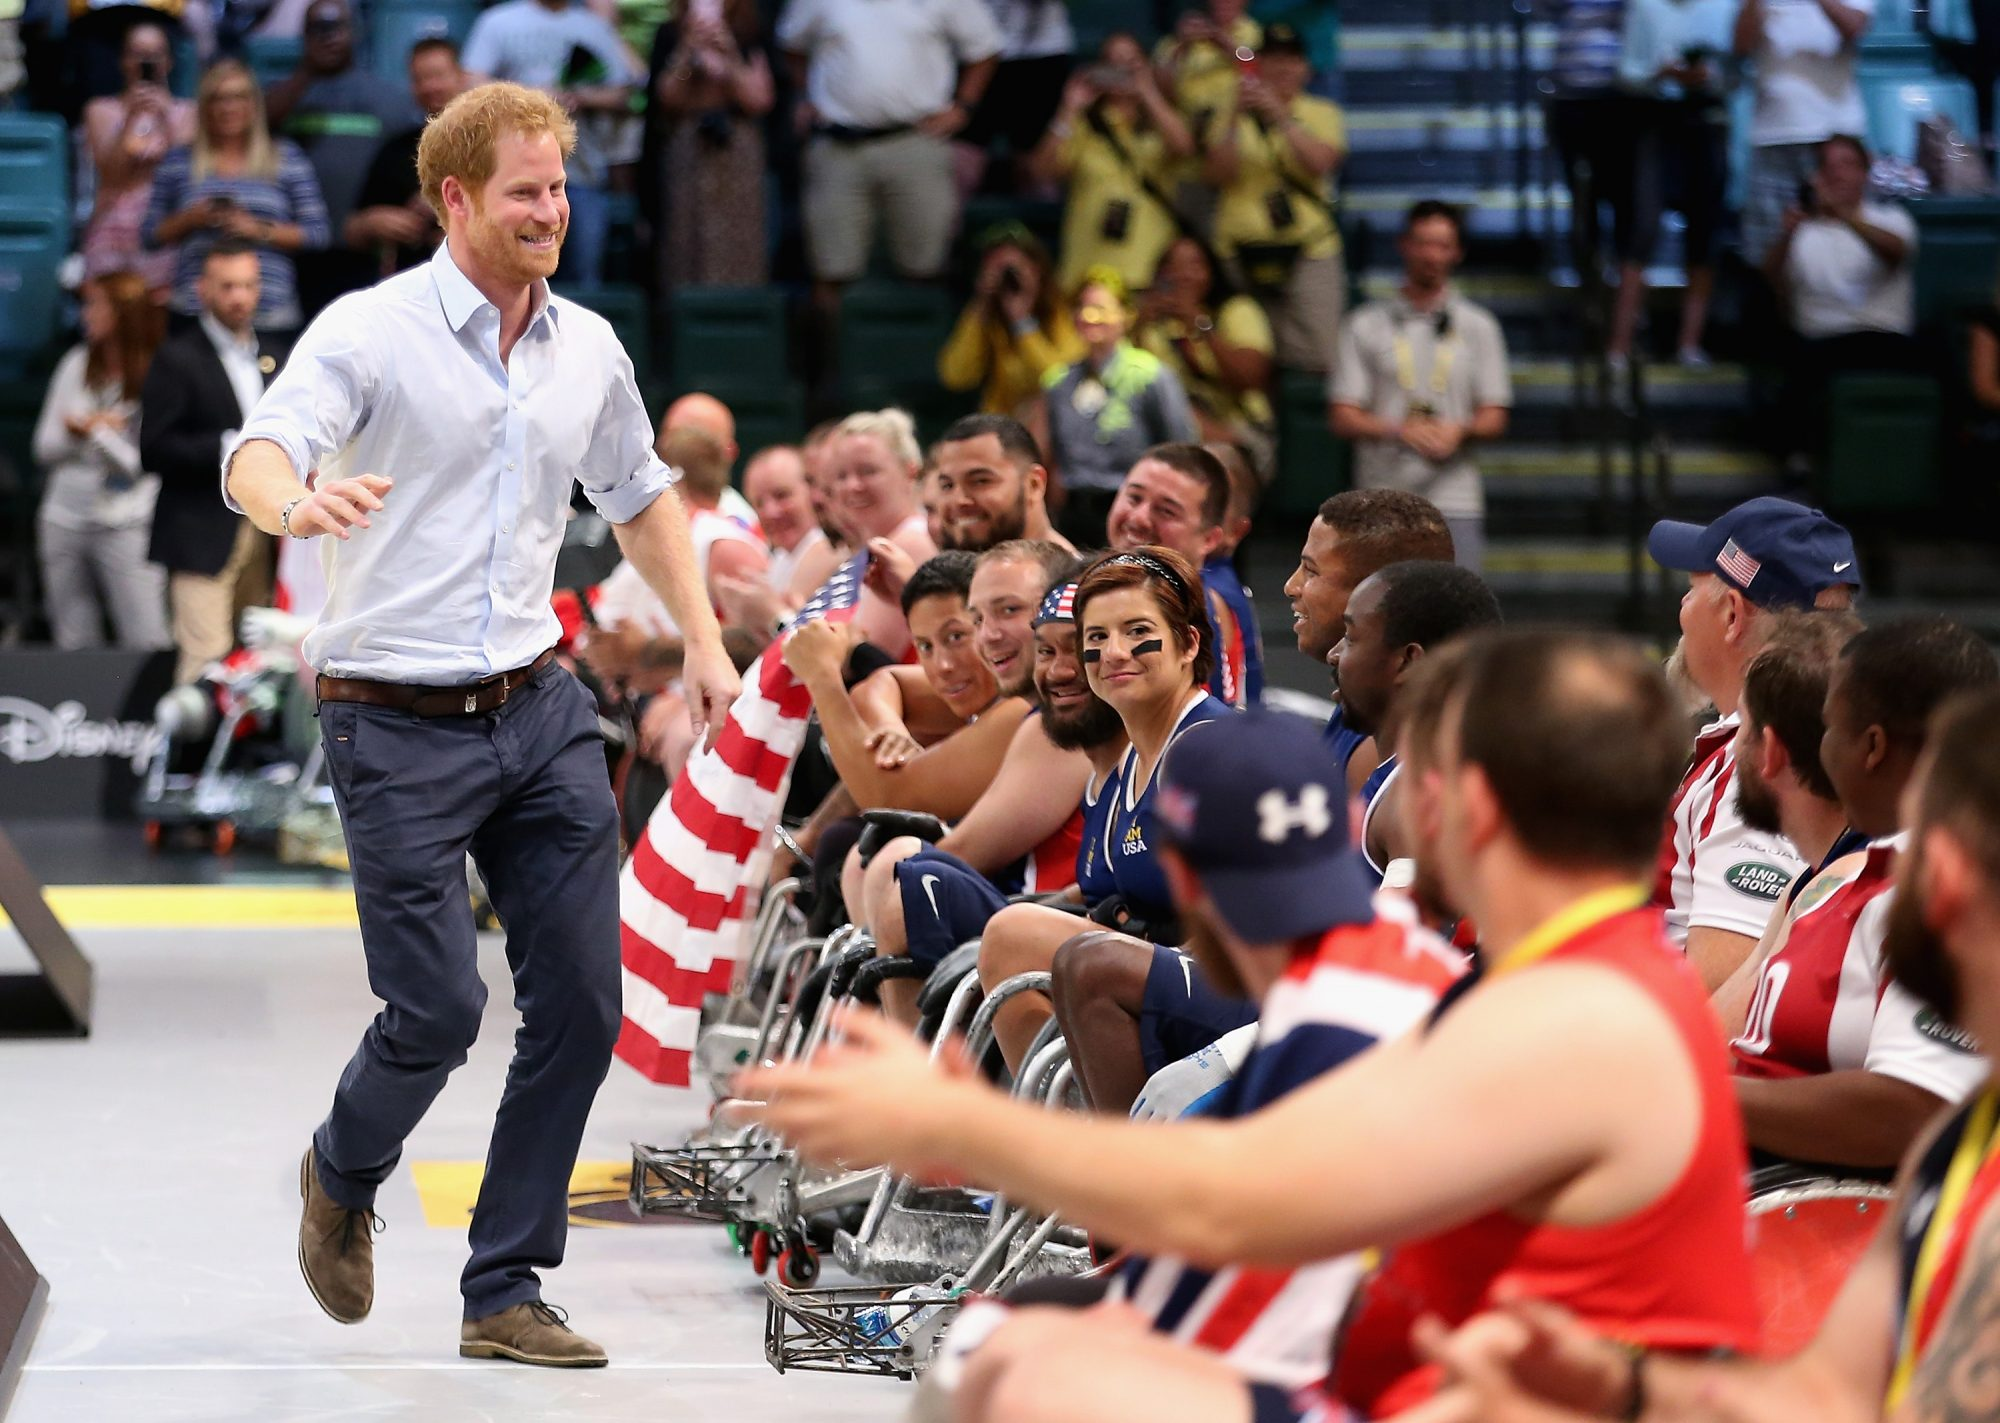 Invictus Games Orlando 2016 - Behind The Scenes